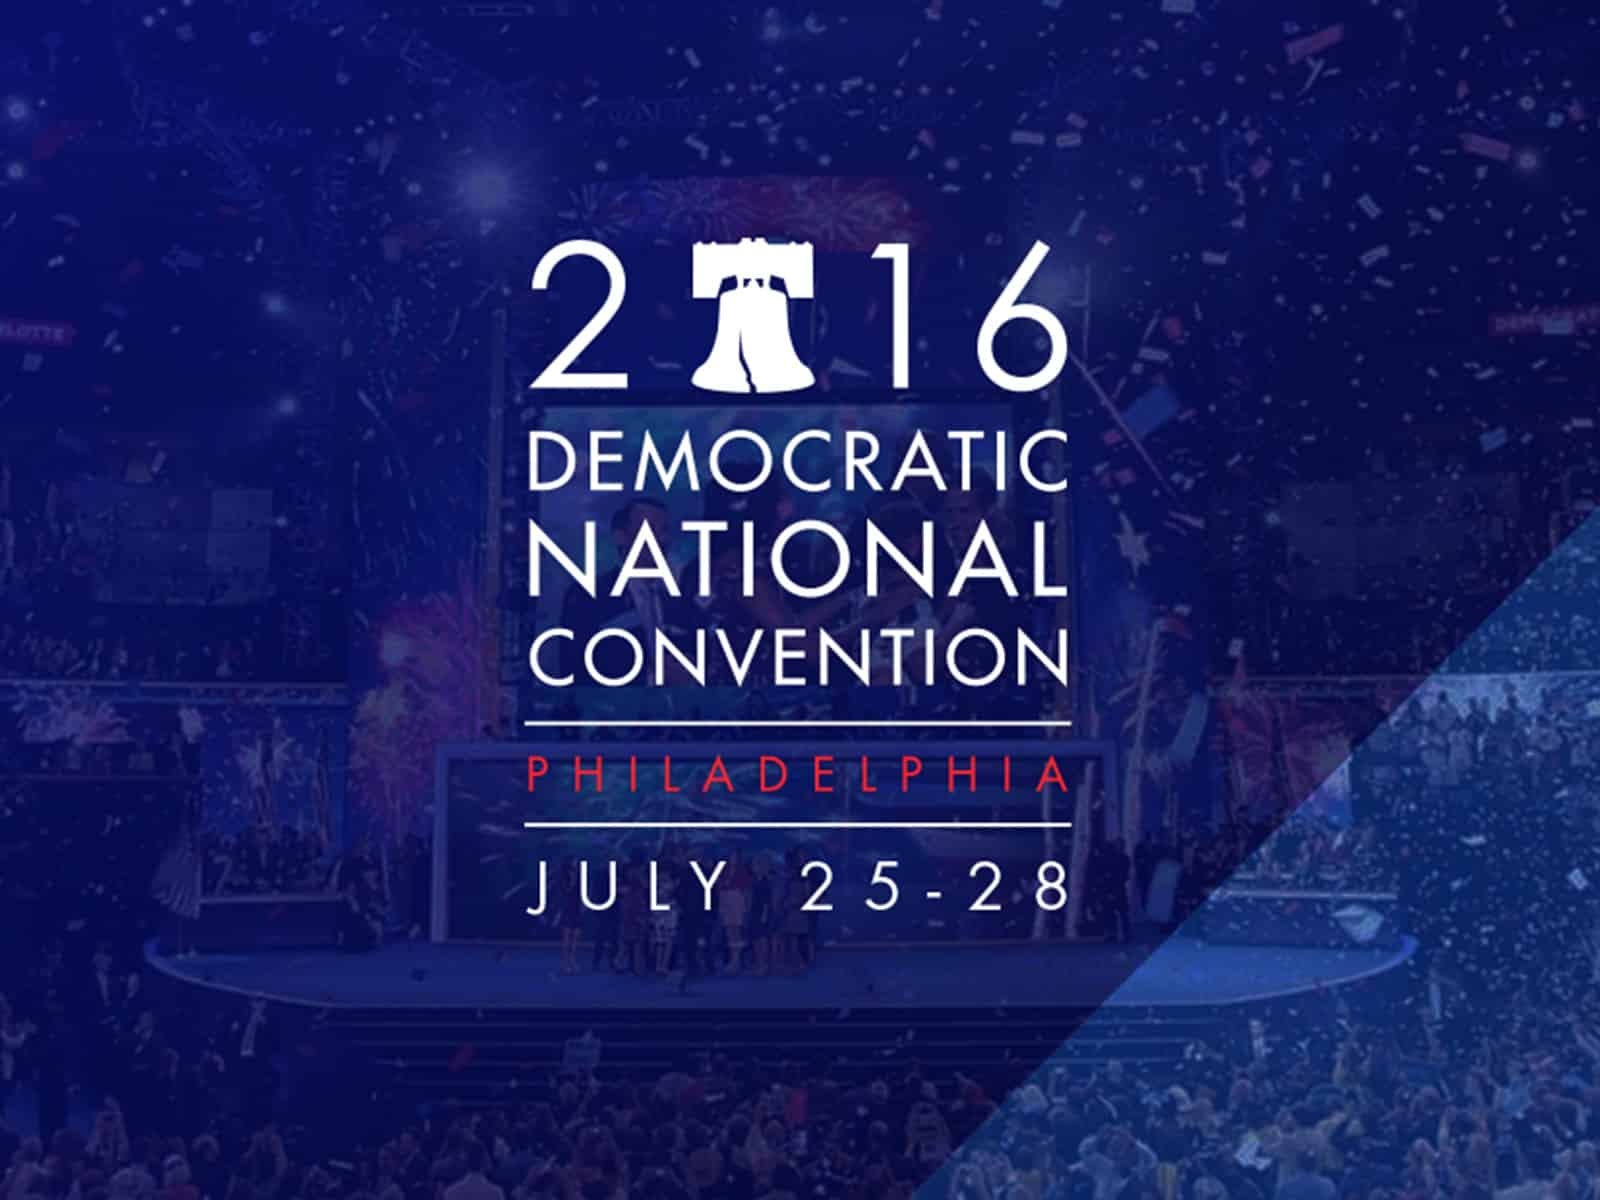 DNC Caucus Addiction - Freedom From Addiction